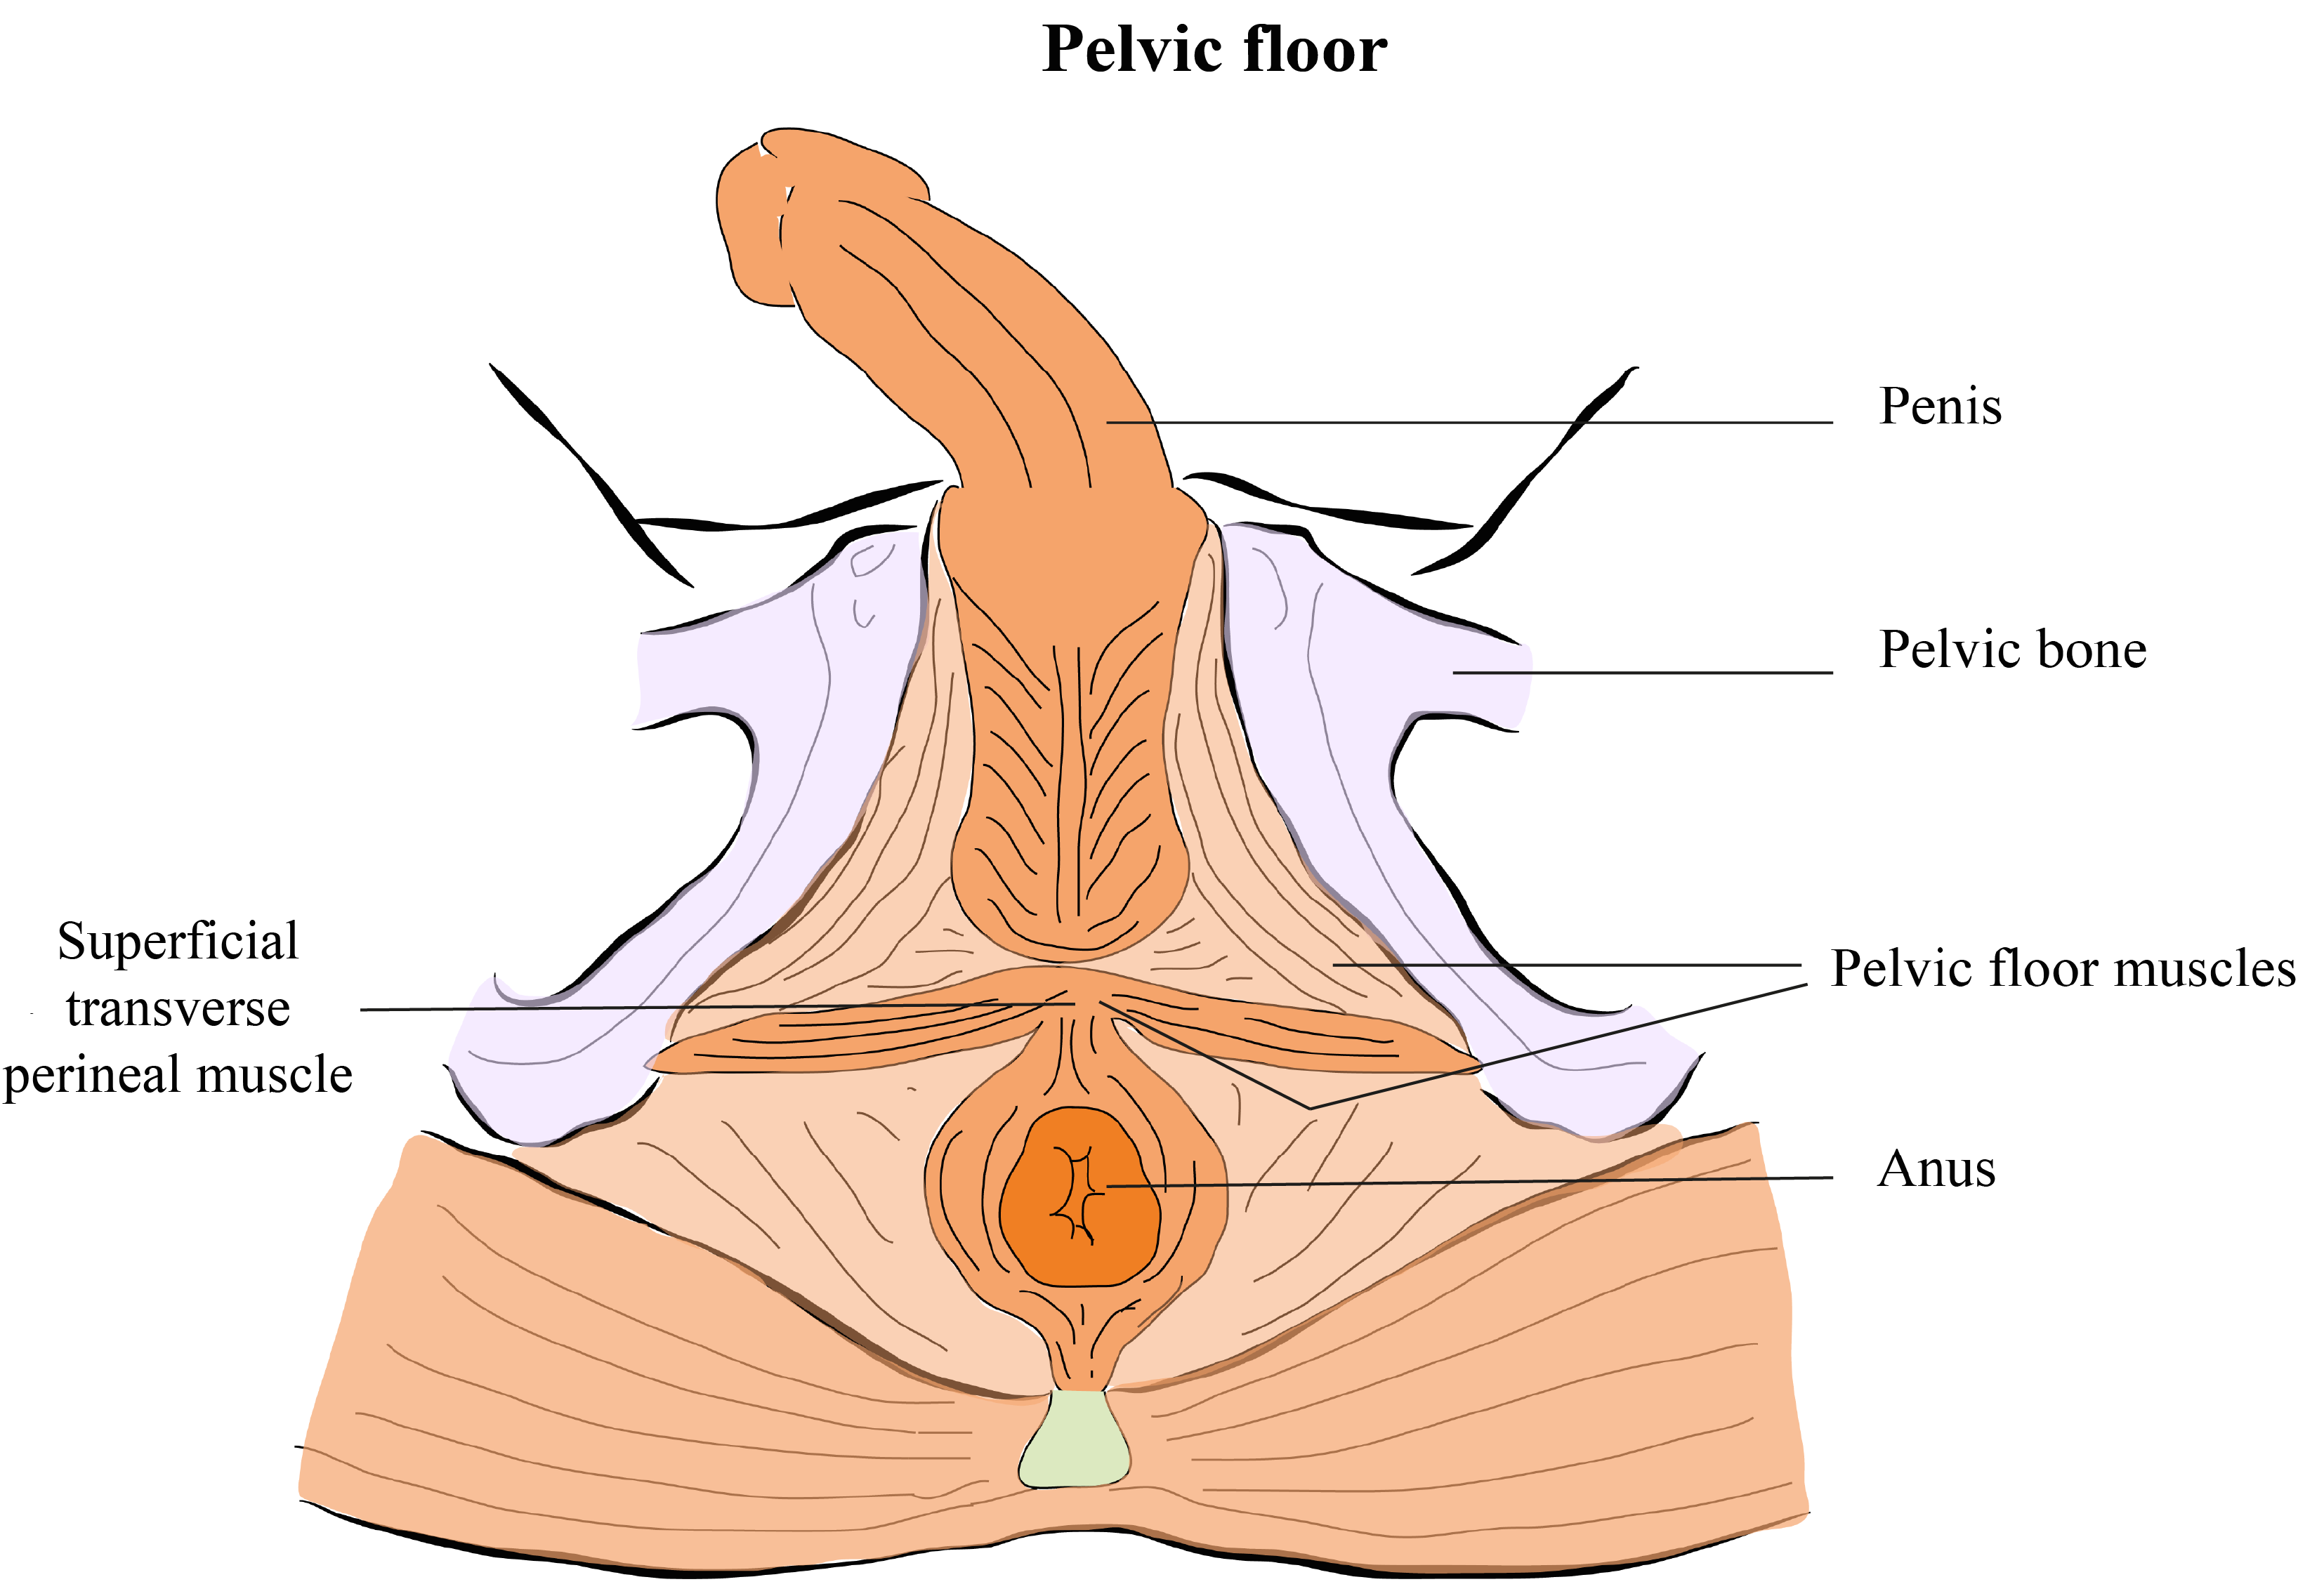 Pelvic floor exercises - how to do them